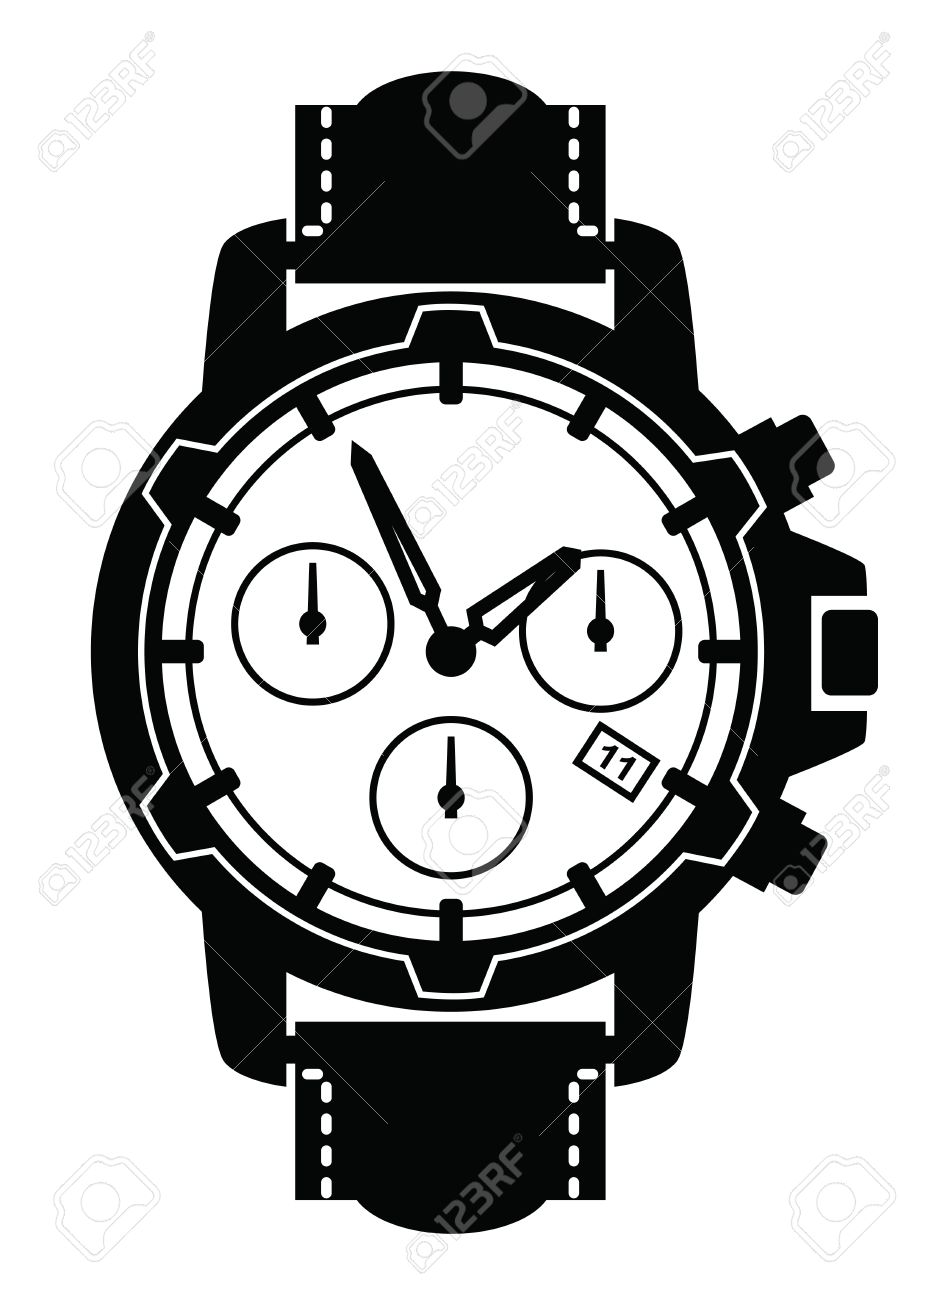 Neighborhood watch face clipart black and white clip art freeuse Watch Clipart Black And White | Free download best Watch ... clip art freeuse